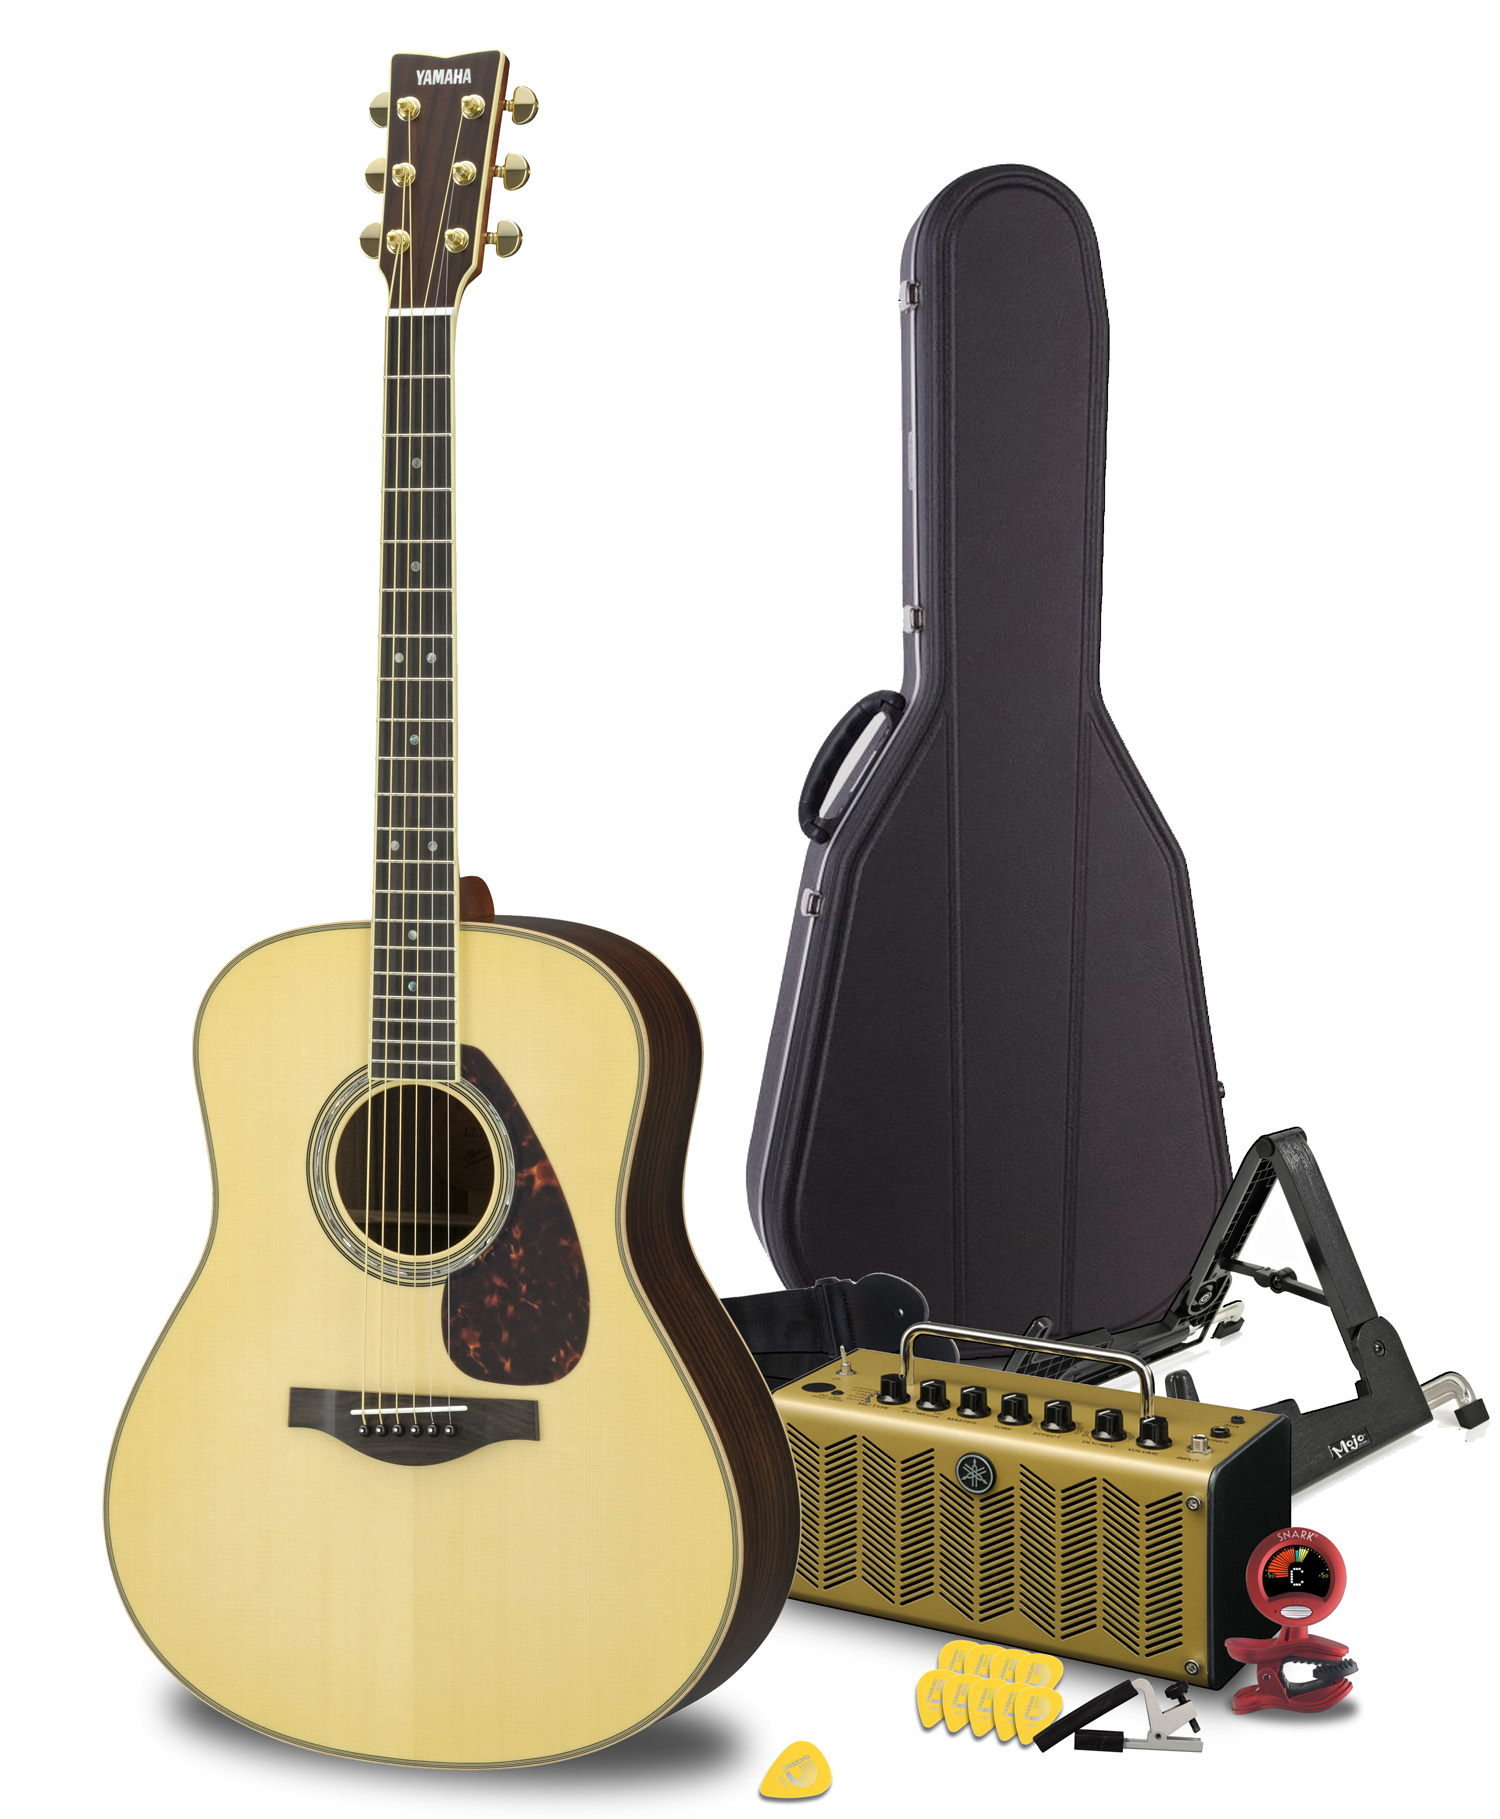 yamaha maverick deluxe acoustic guitar package featuring the ll16 are handcrafted guitar thr5a. Black Bedroom Furniture Sets. Home Design Ideas